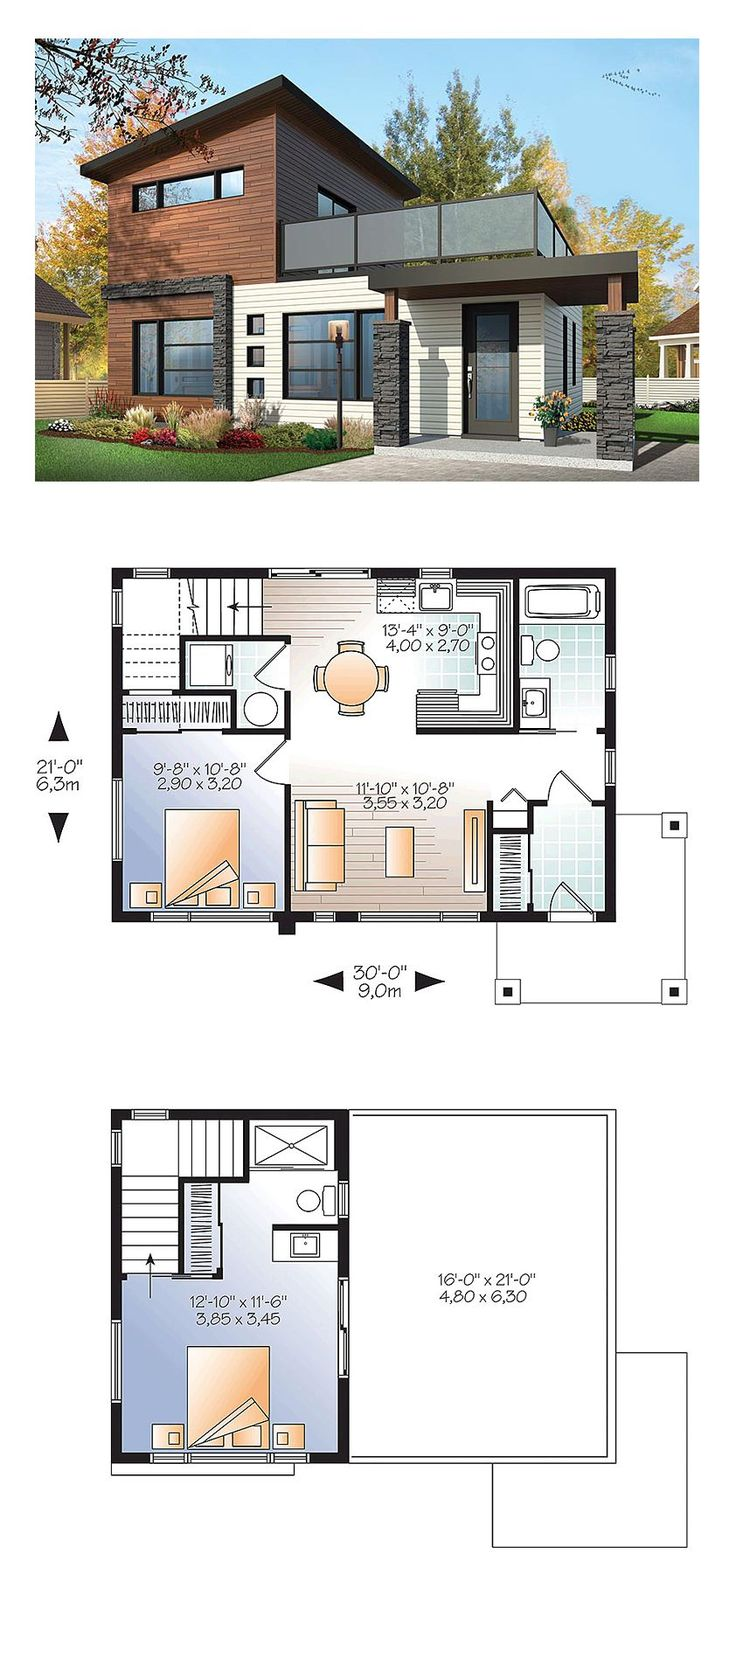 Modern House Plan 76461 | Total Living Area: 924 sq. ft., 2 bedrooms and 2 bathrooms. #modernhome